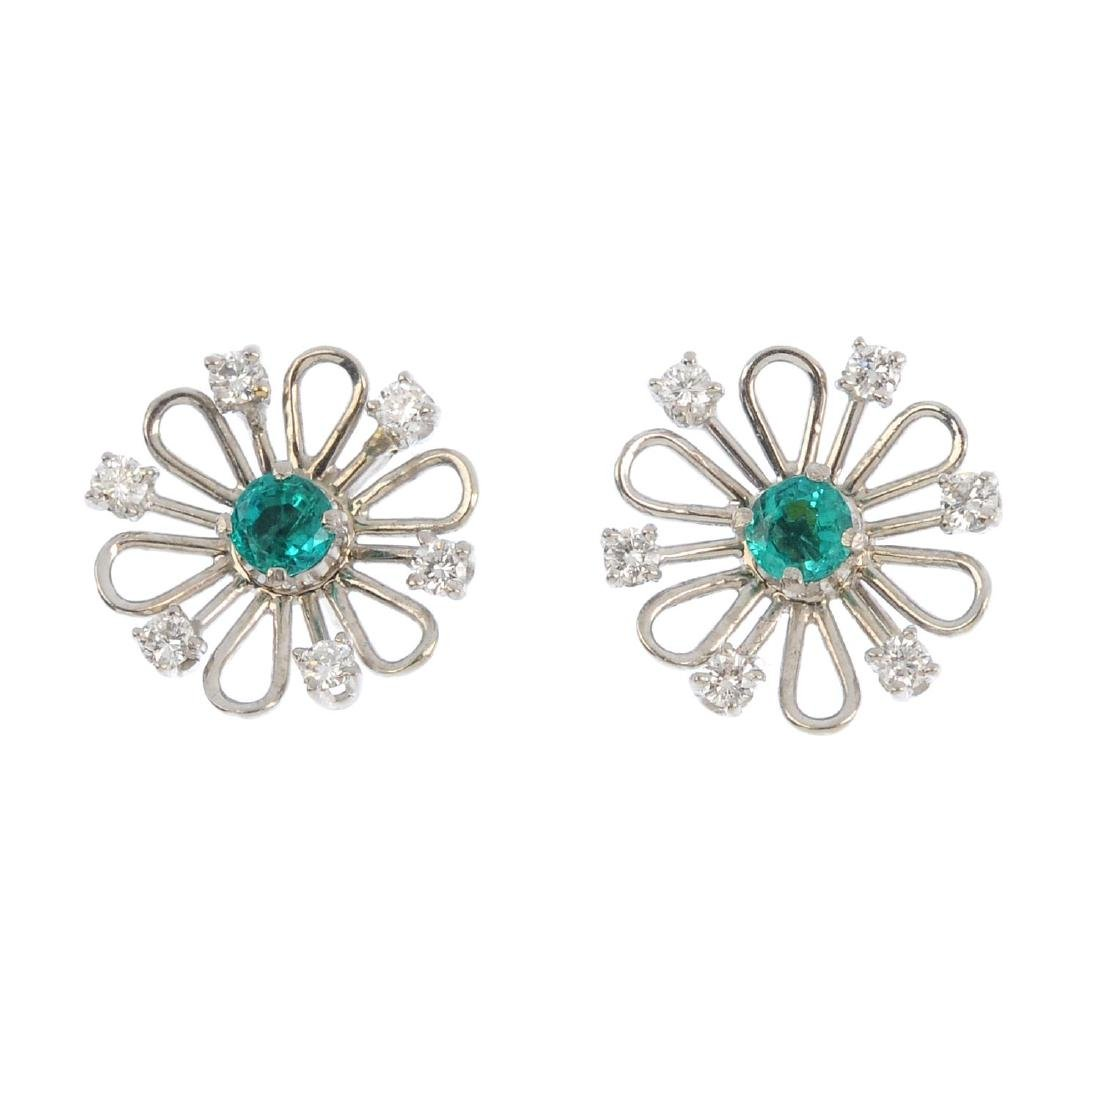 A pair of emerald and diamond floral earrings. The